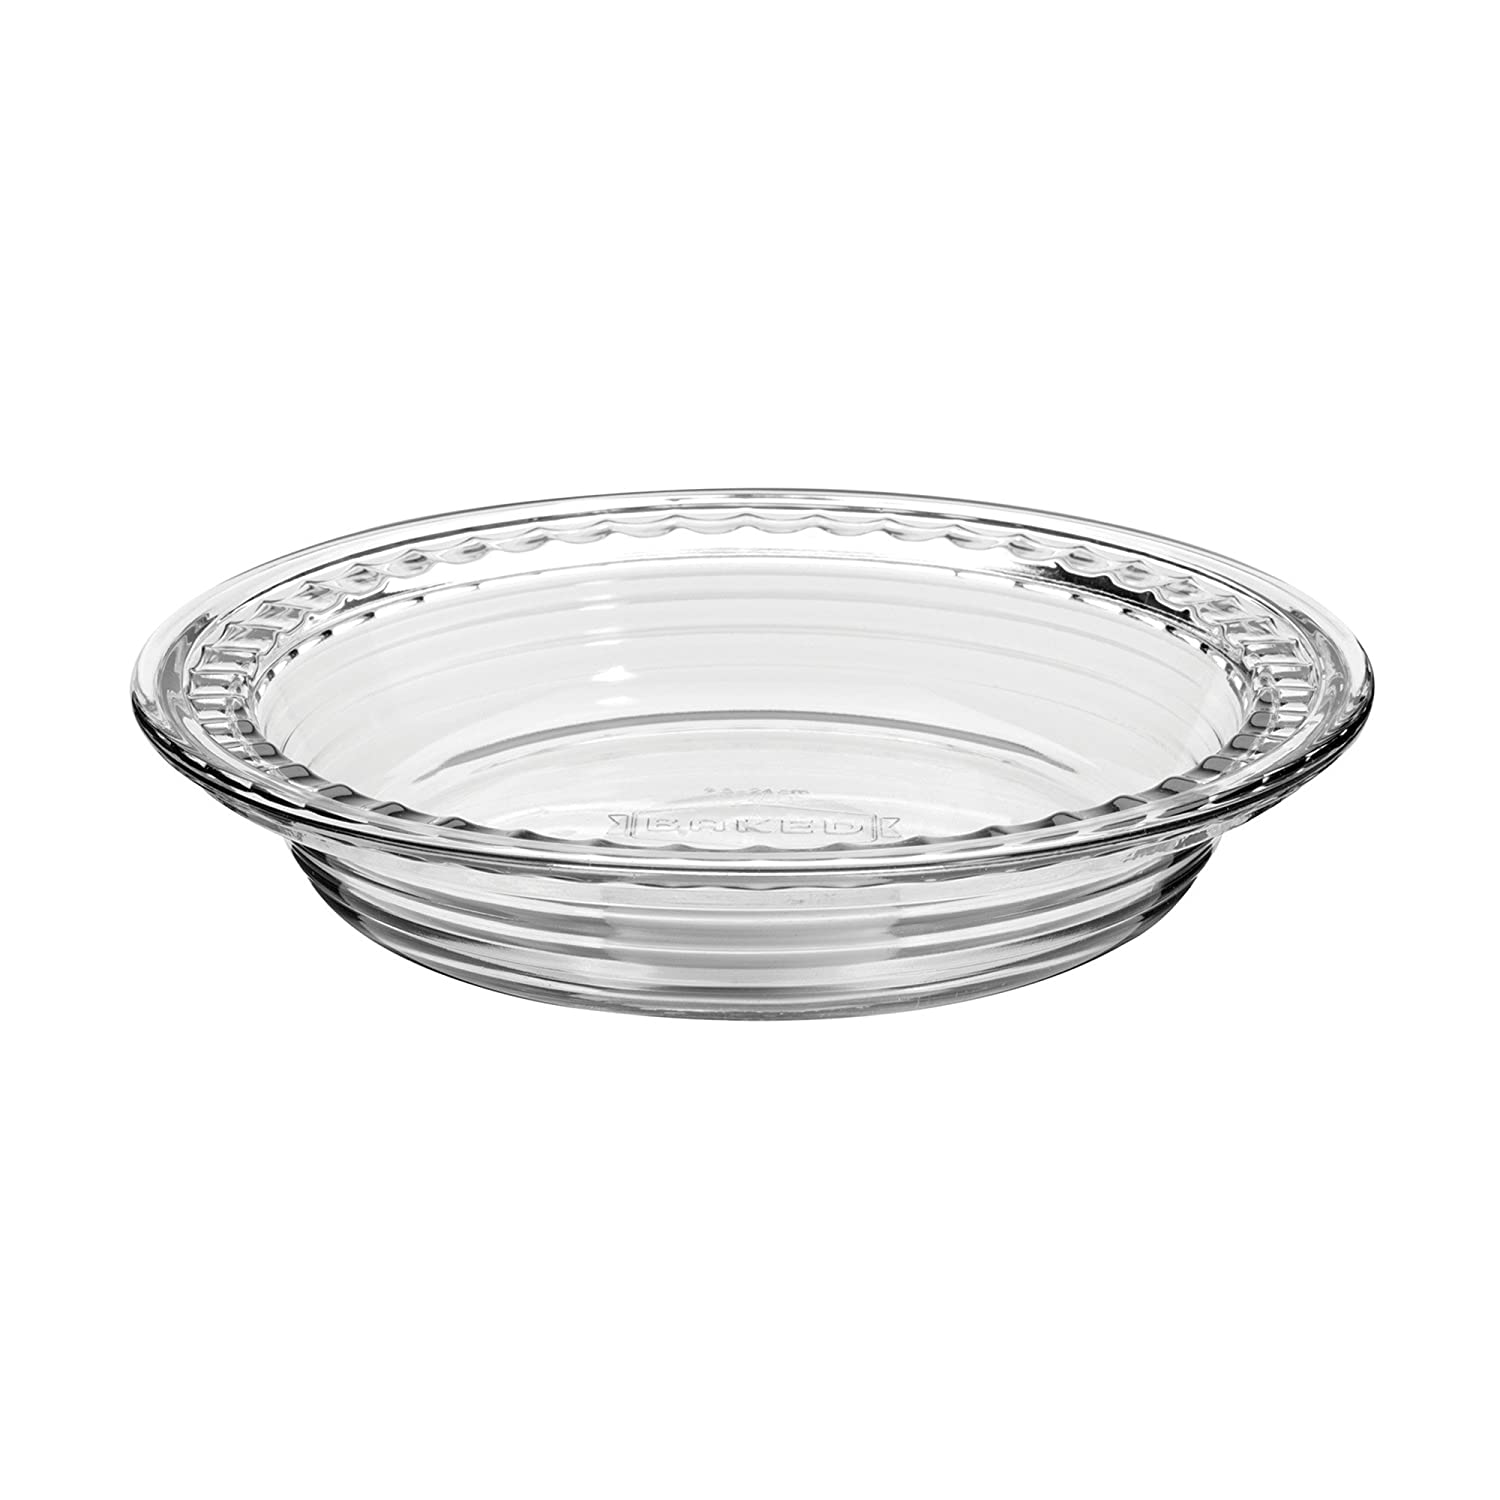 Anchor Hocking 79097 9.5-Inch Baked by Fire-King Deep Pie Plate with Fluted Edge